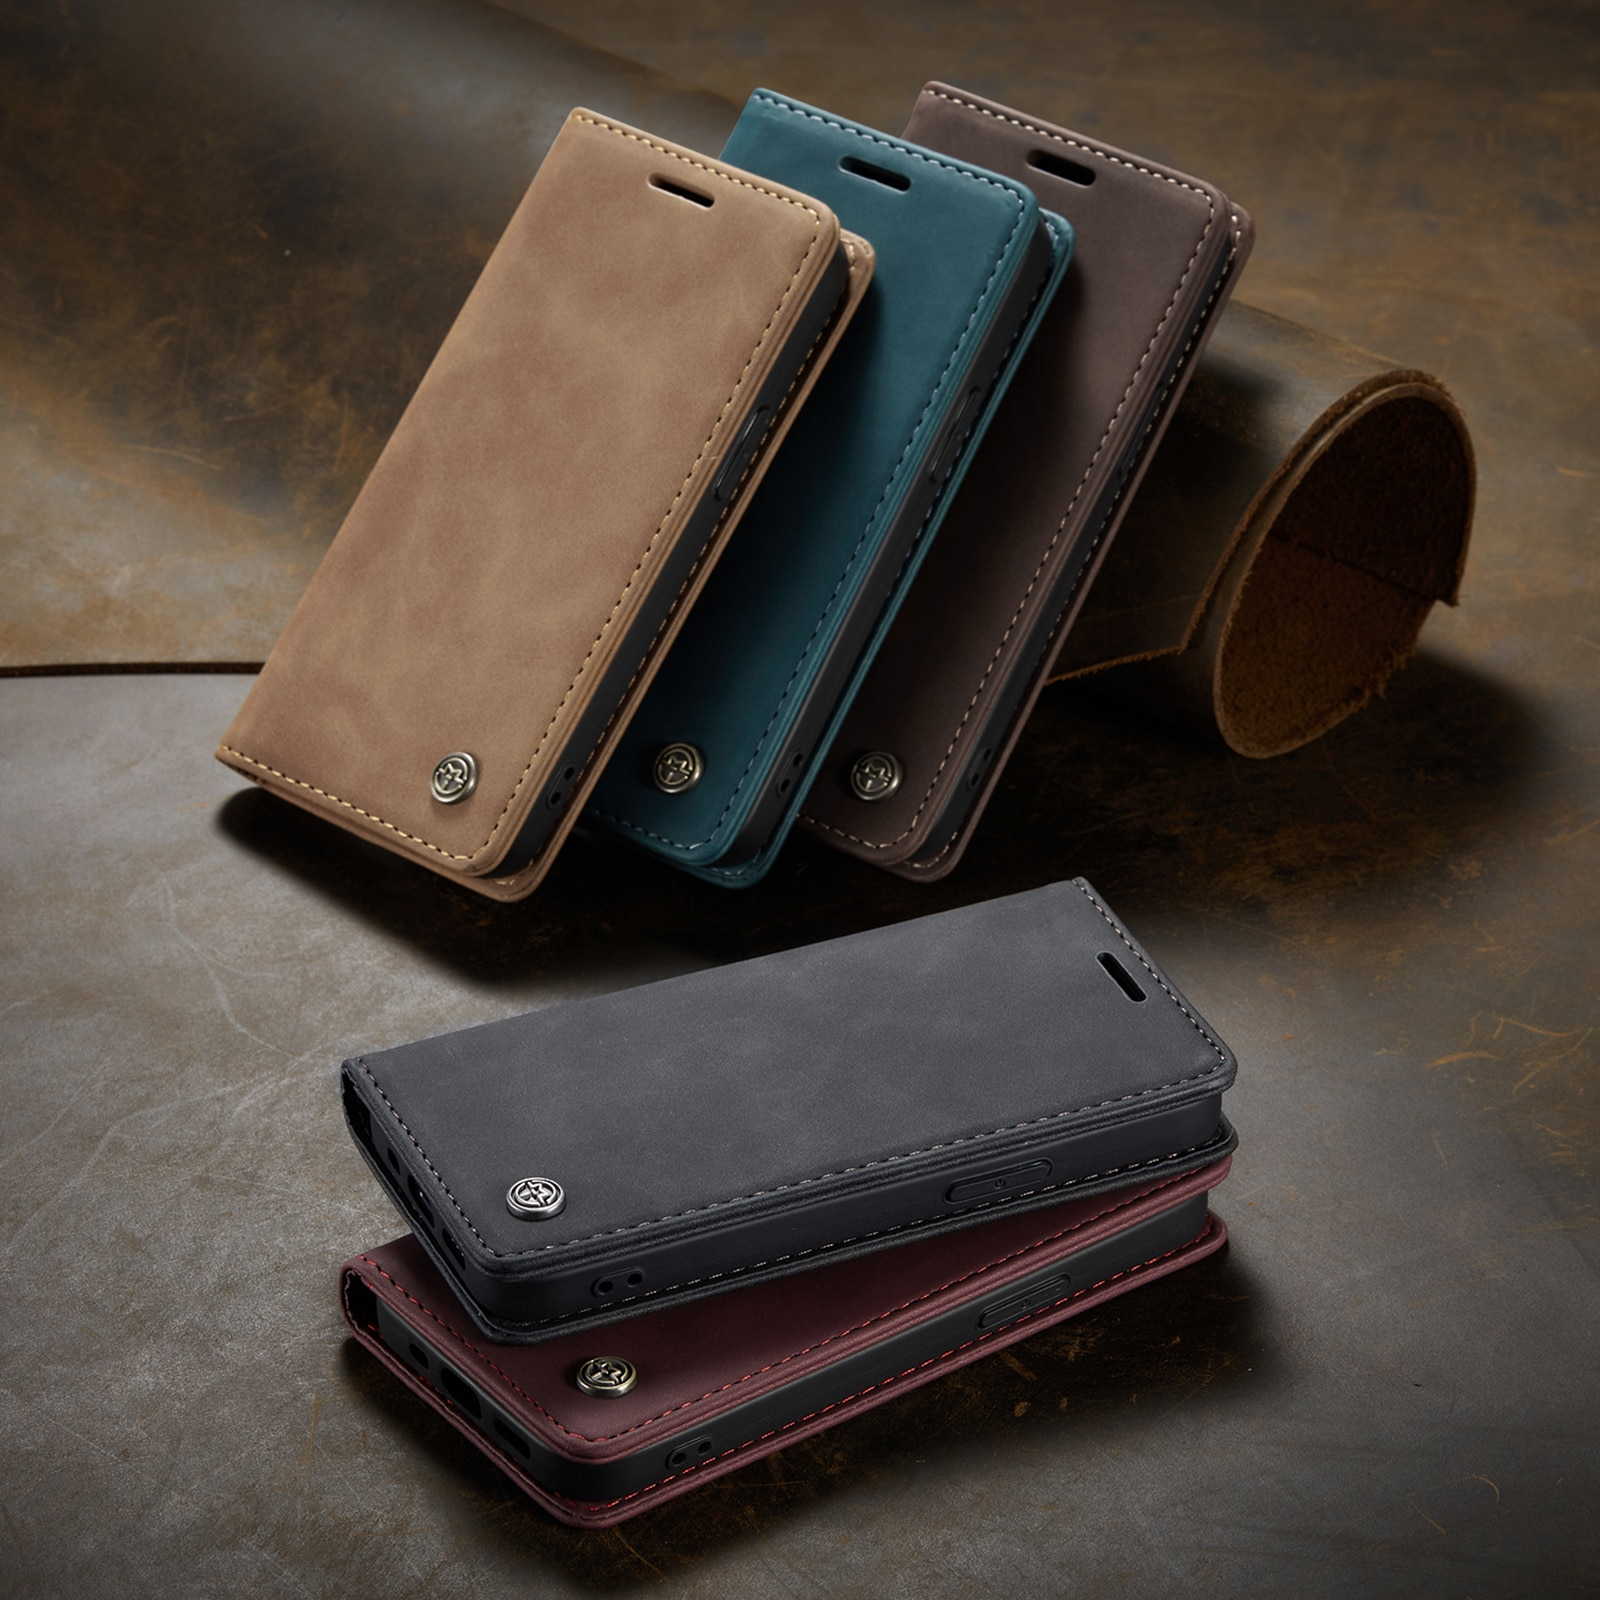 Magnetic Leather Flip Case For iPhone 12 / Pro / Pro Max PU Leather Fitted Bumper Soft Retro Flip Case Book Wallet Cover